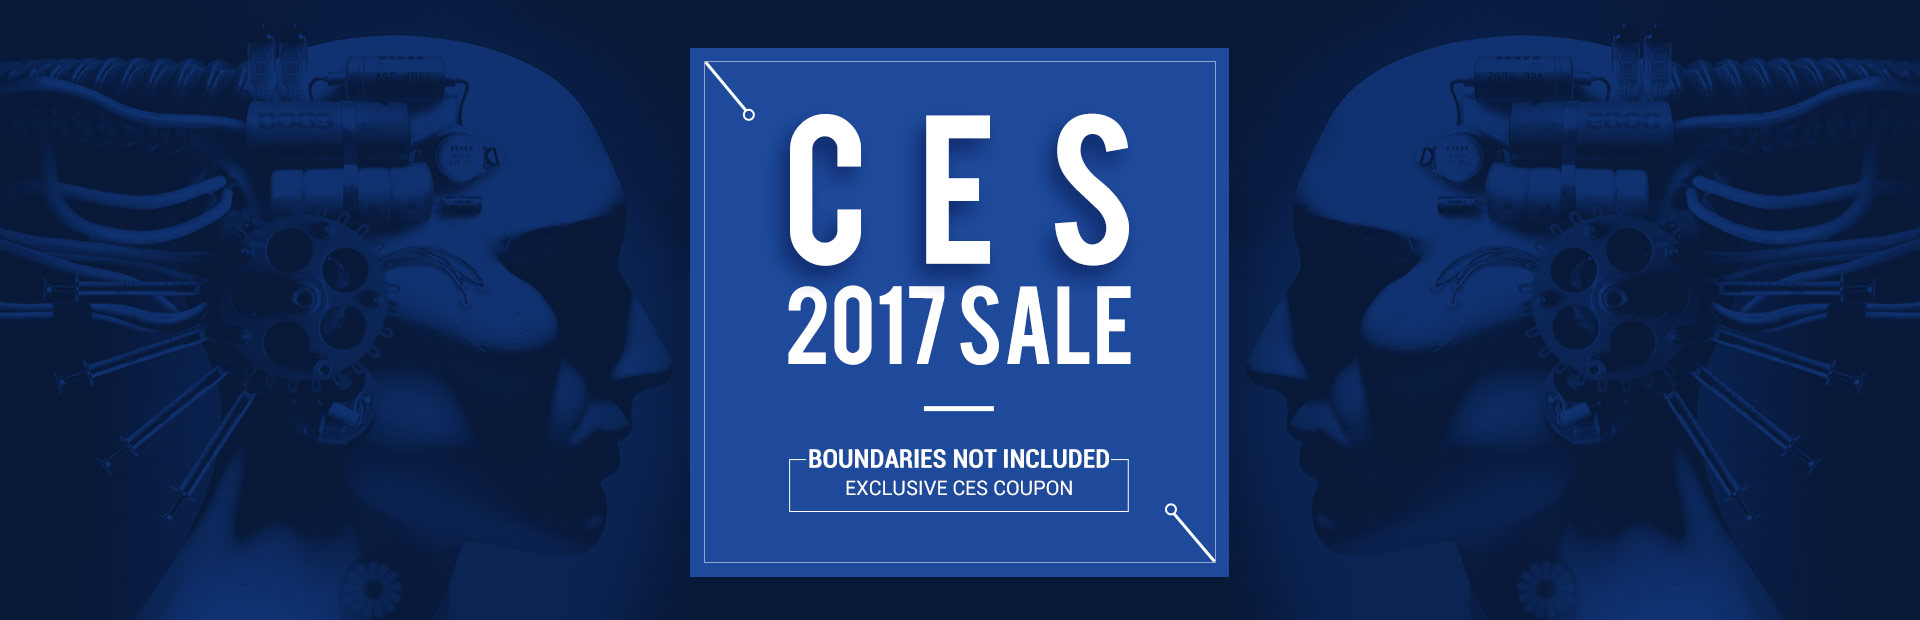 CES 2017 Gearbest